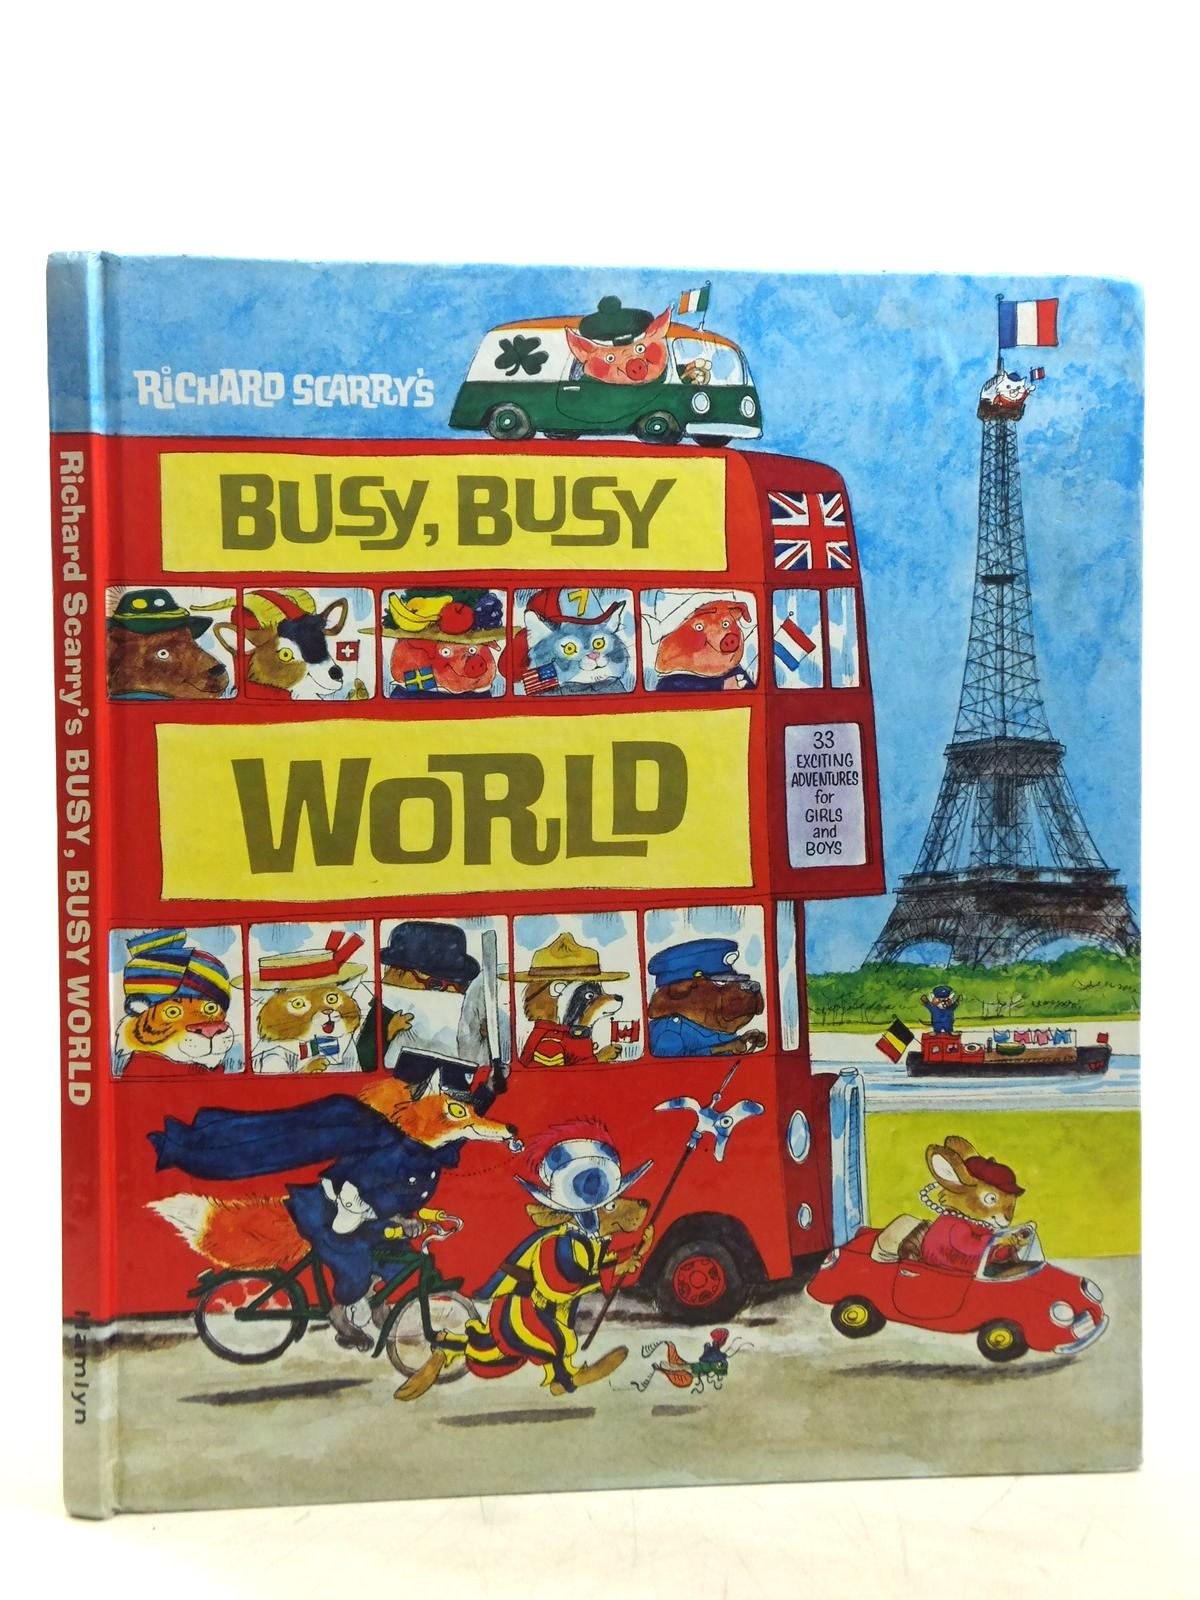 Photo of RICHARD SCARRY'S BUSY, BUSY WORLD written by Scarry, Richard illustrated by Scarry, Richard published by Hamlyn (STOCK CODE: 2119357)  for sale by Stella & Rose's Books